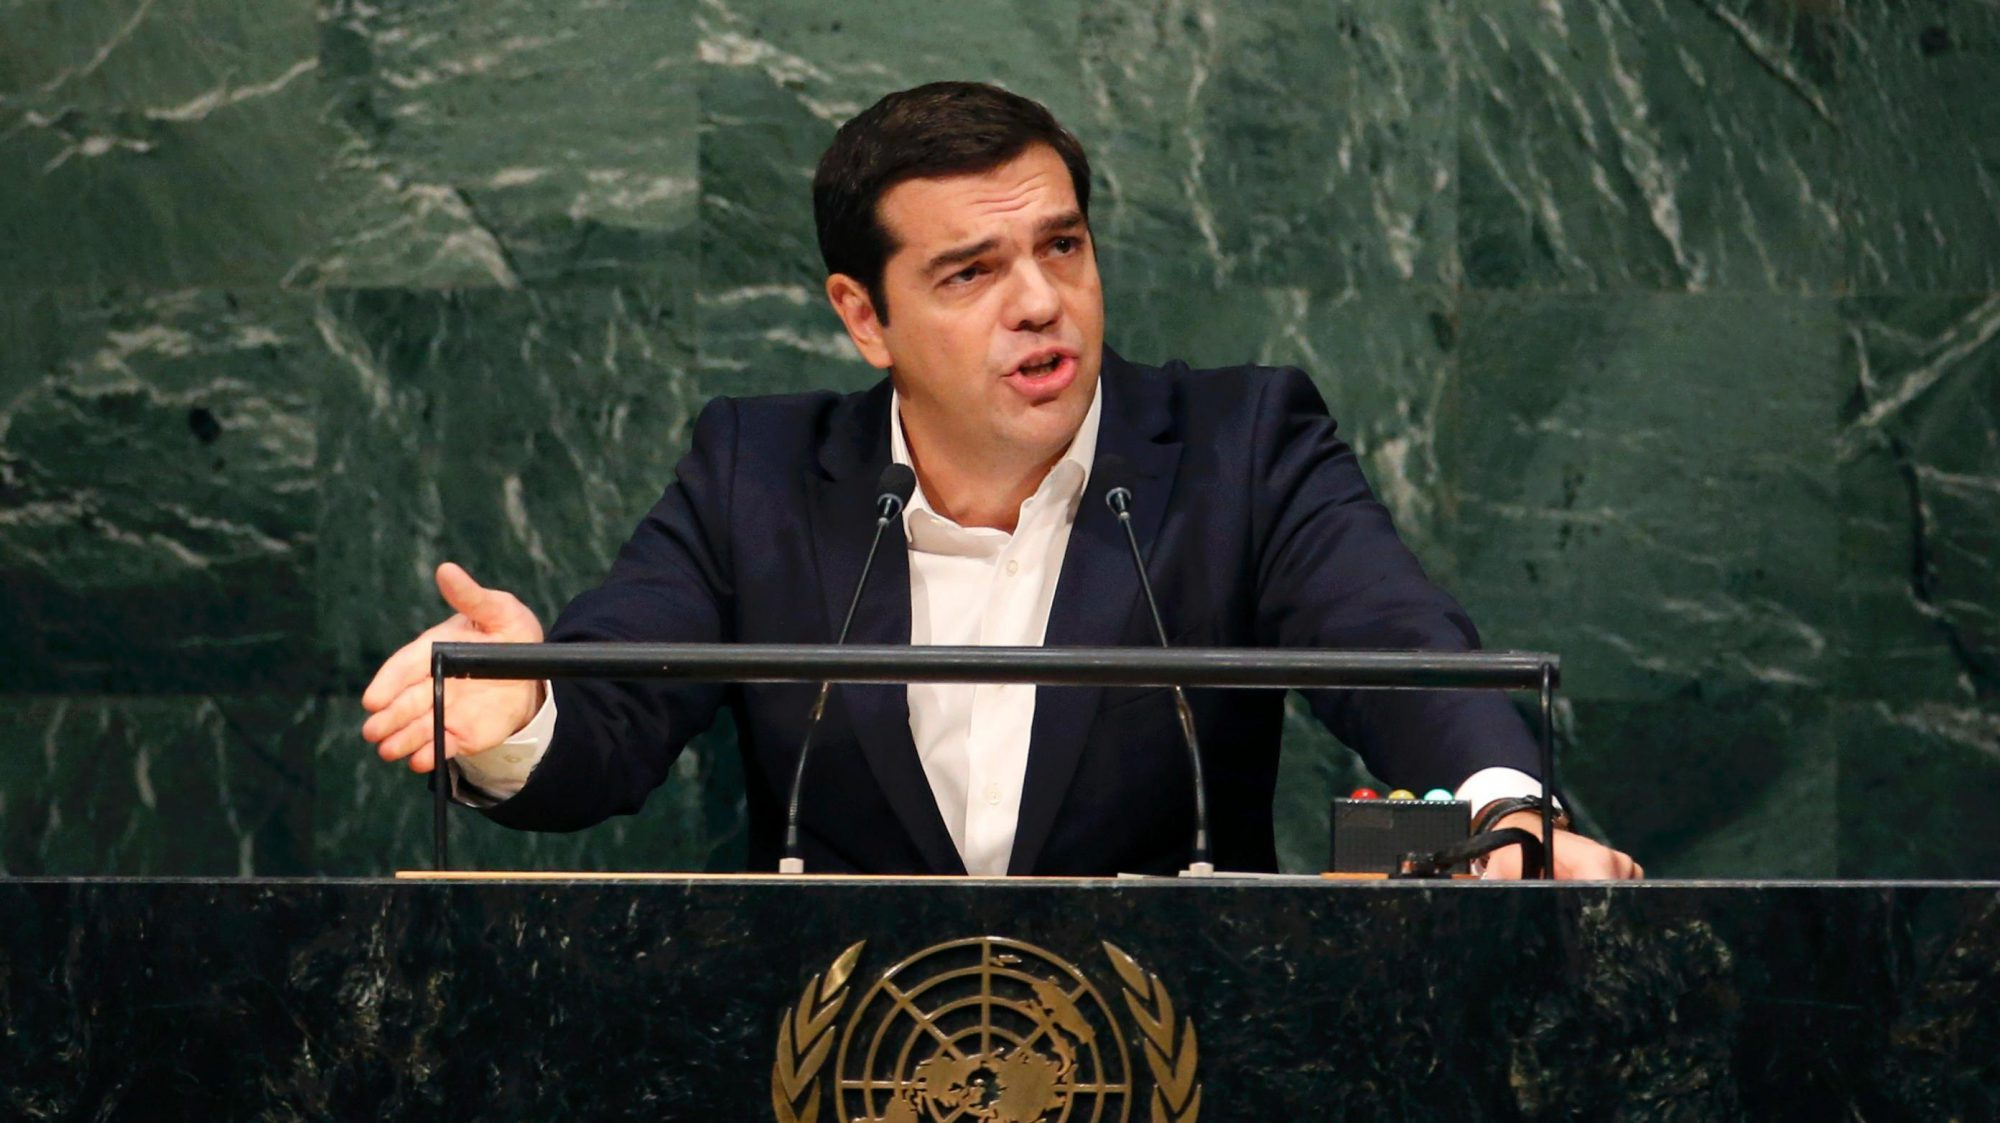 Alexis Tsipras at the UN General Assembly in New York